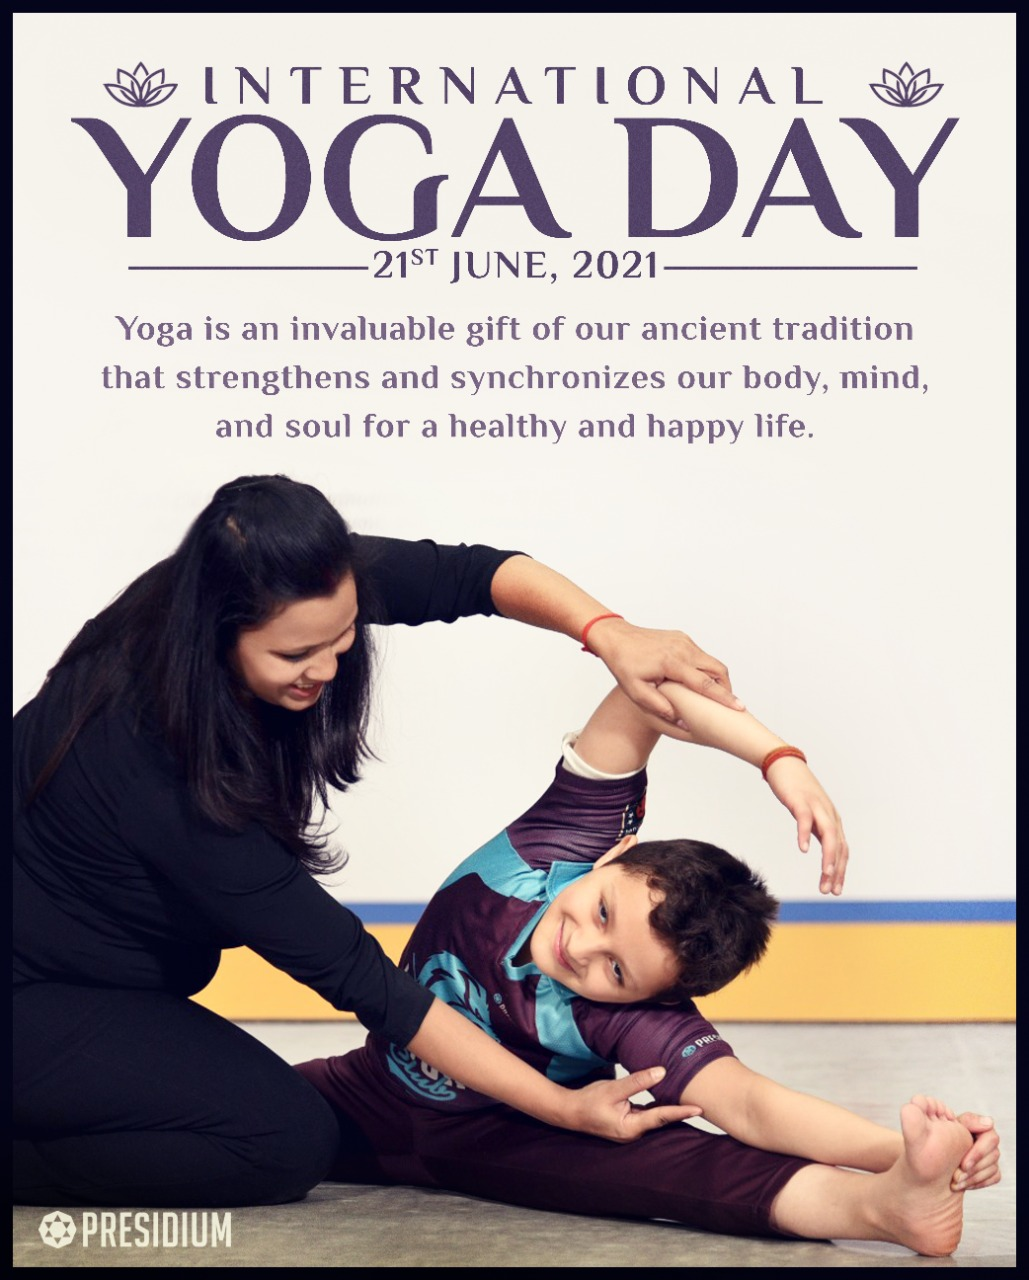 WORLD YOGA DAY: MAY YOU SHINE WITH THE DISCIPLINE OF YOGA!